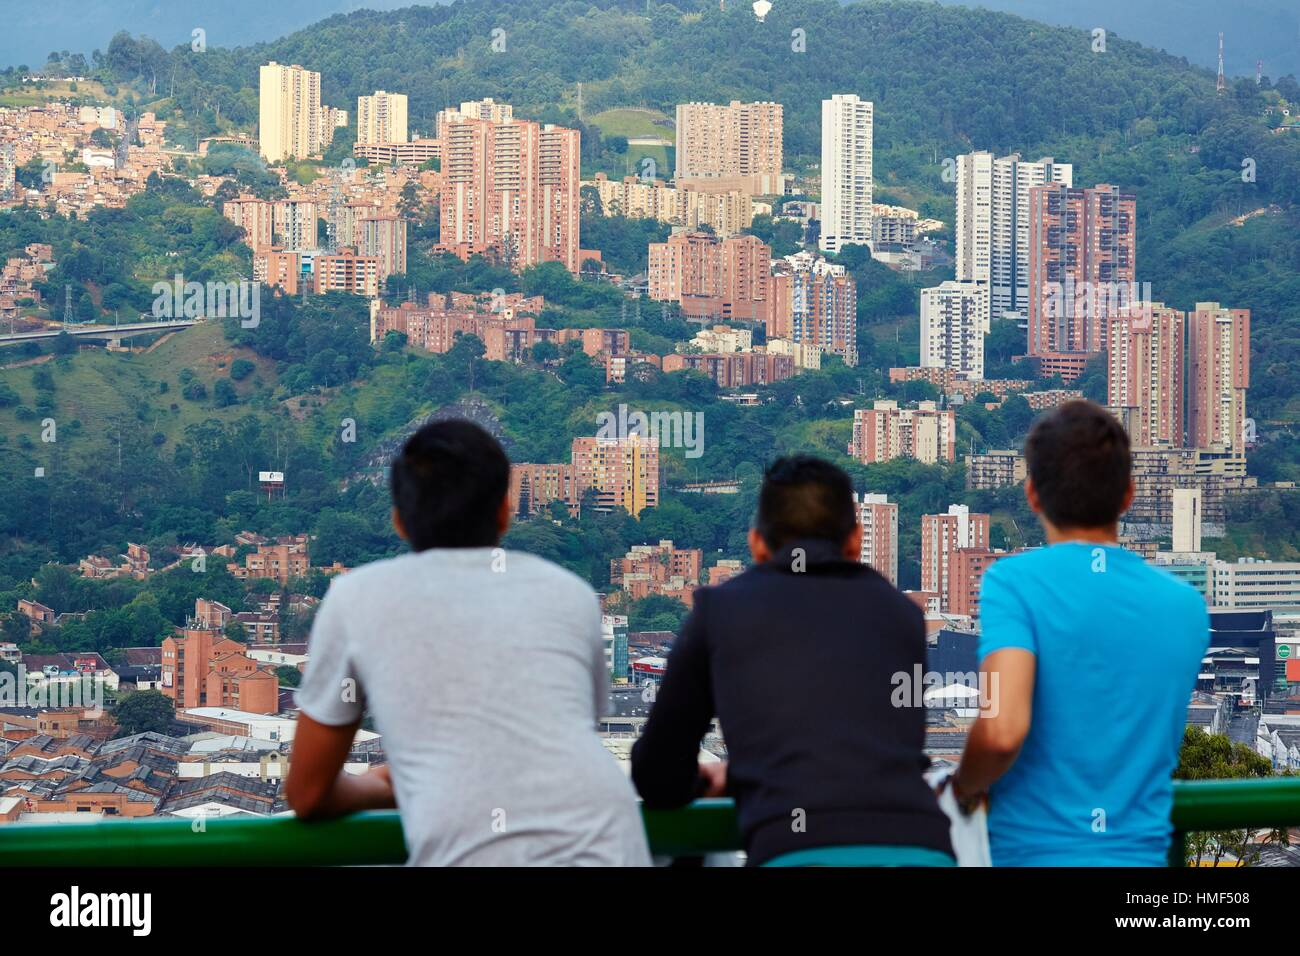 Panoramic Aburra Valley, Cerro Nutibara, Medellin, Antioquia, Colombia, South America - Stock Image